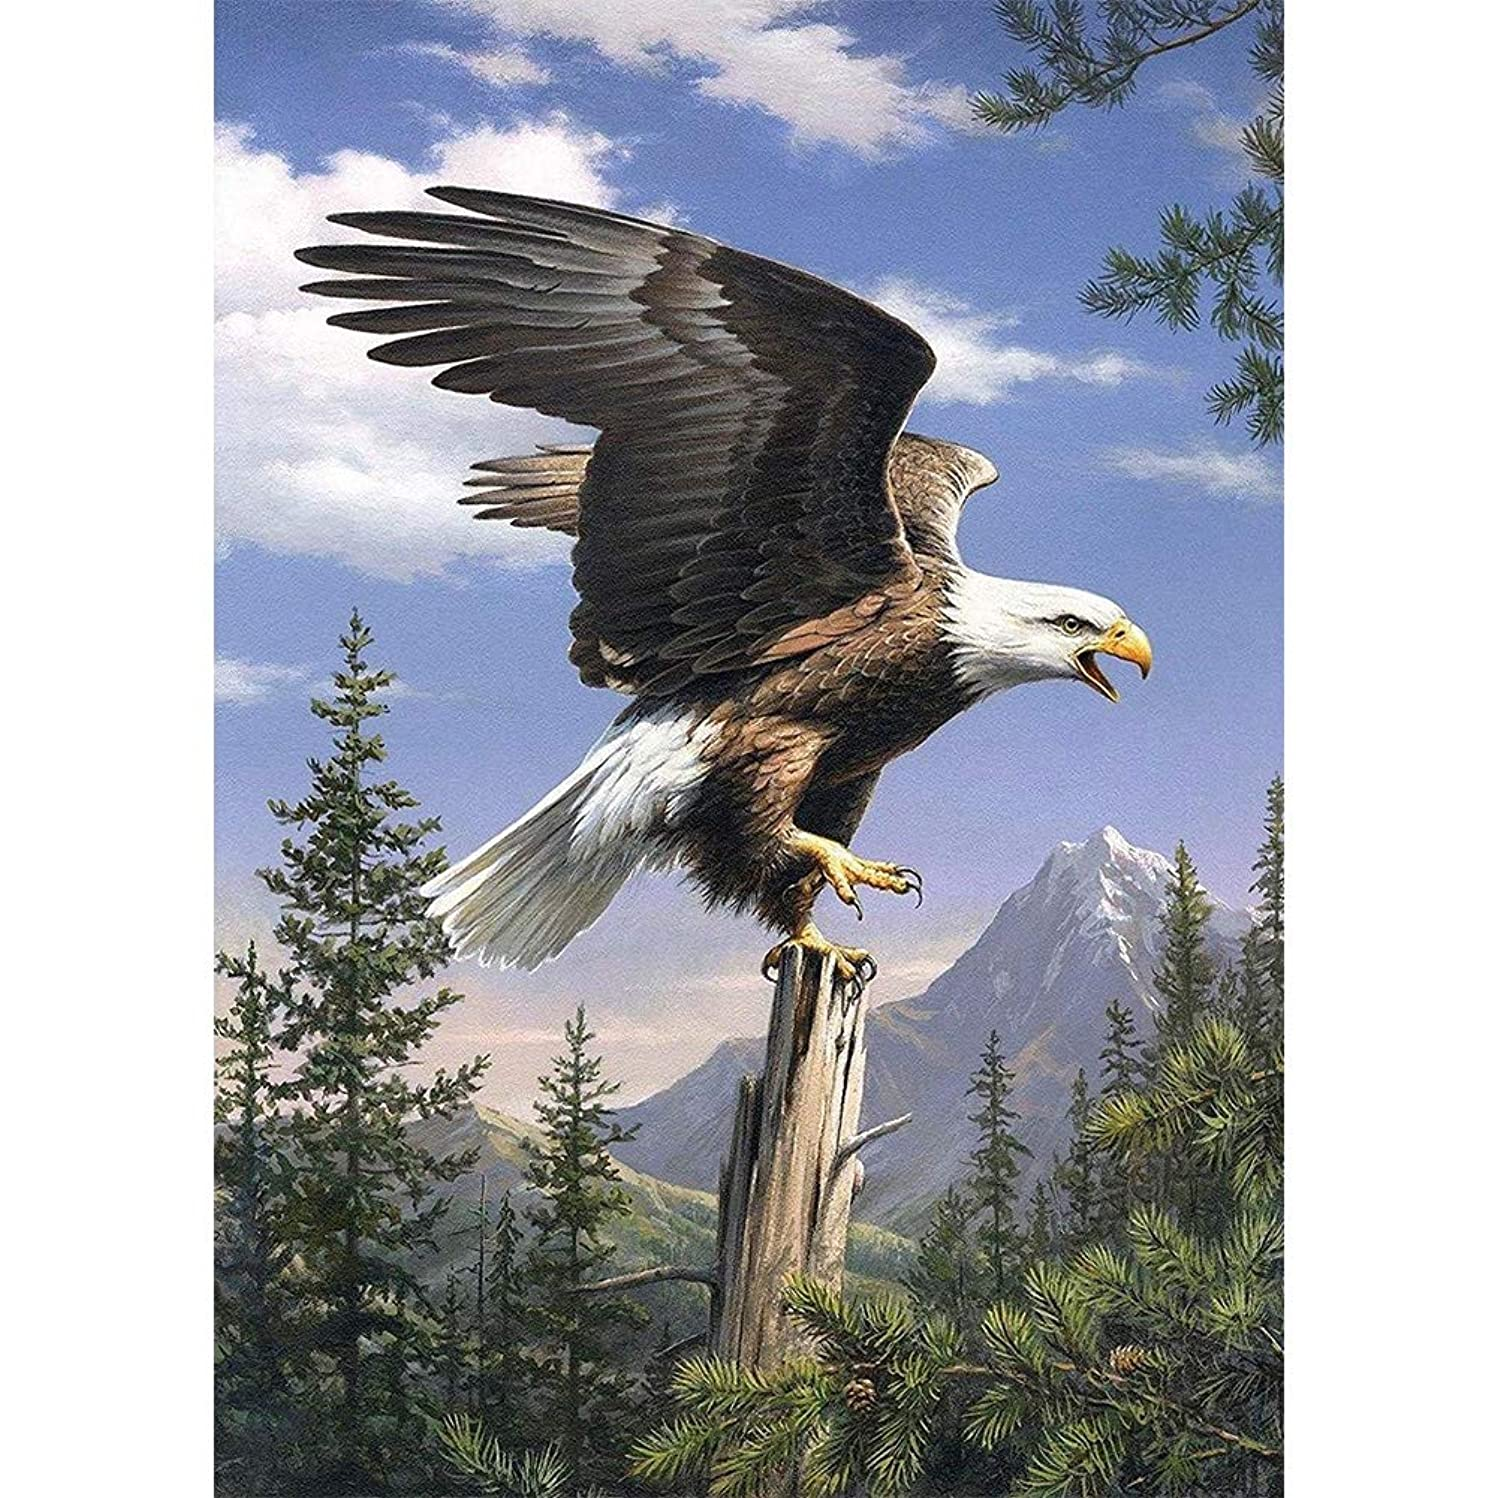 5D DIY Diamond Painting Art Kit Cross Stitch by Number Kit Arts Craft Wall Decor Embroidery Painting Eagle Pattern (Pattern D)